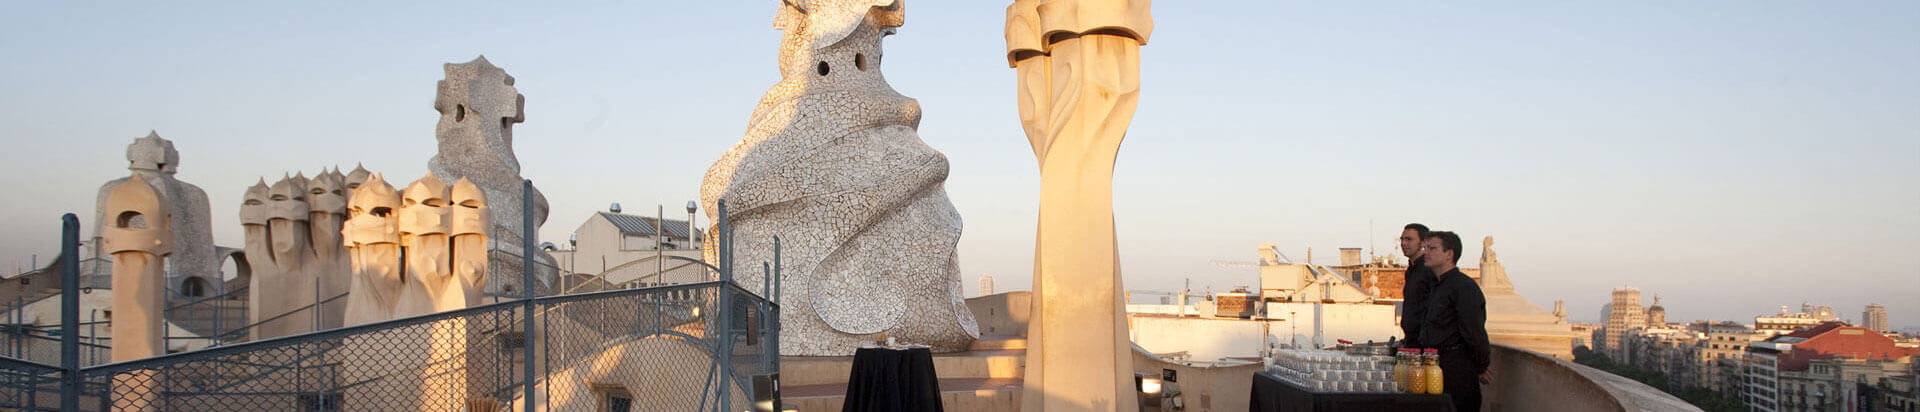 pedrera visites especials exclusives barcelona